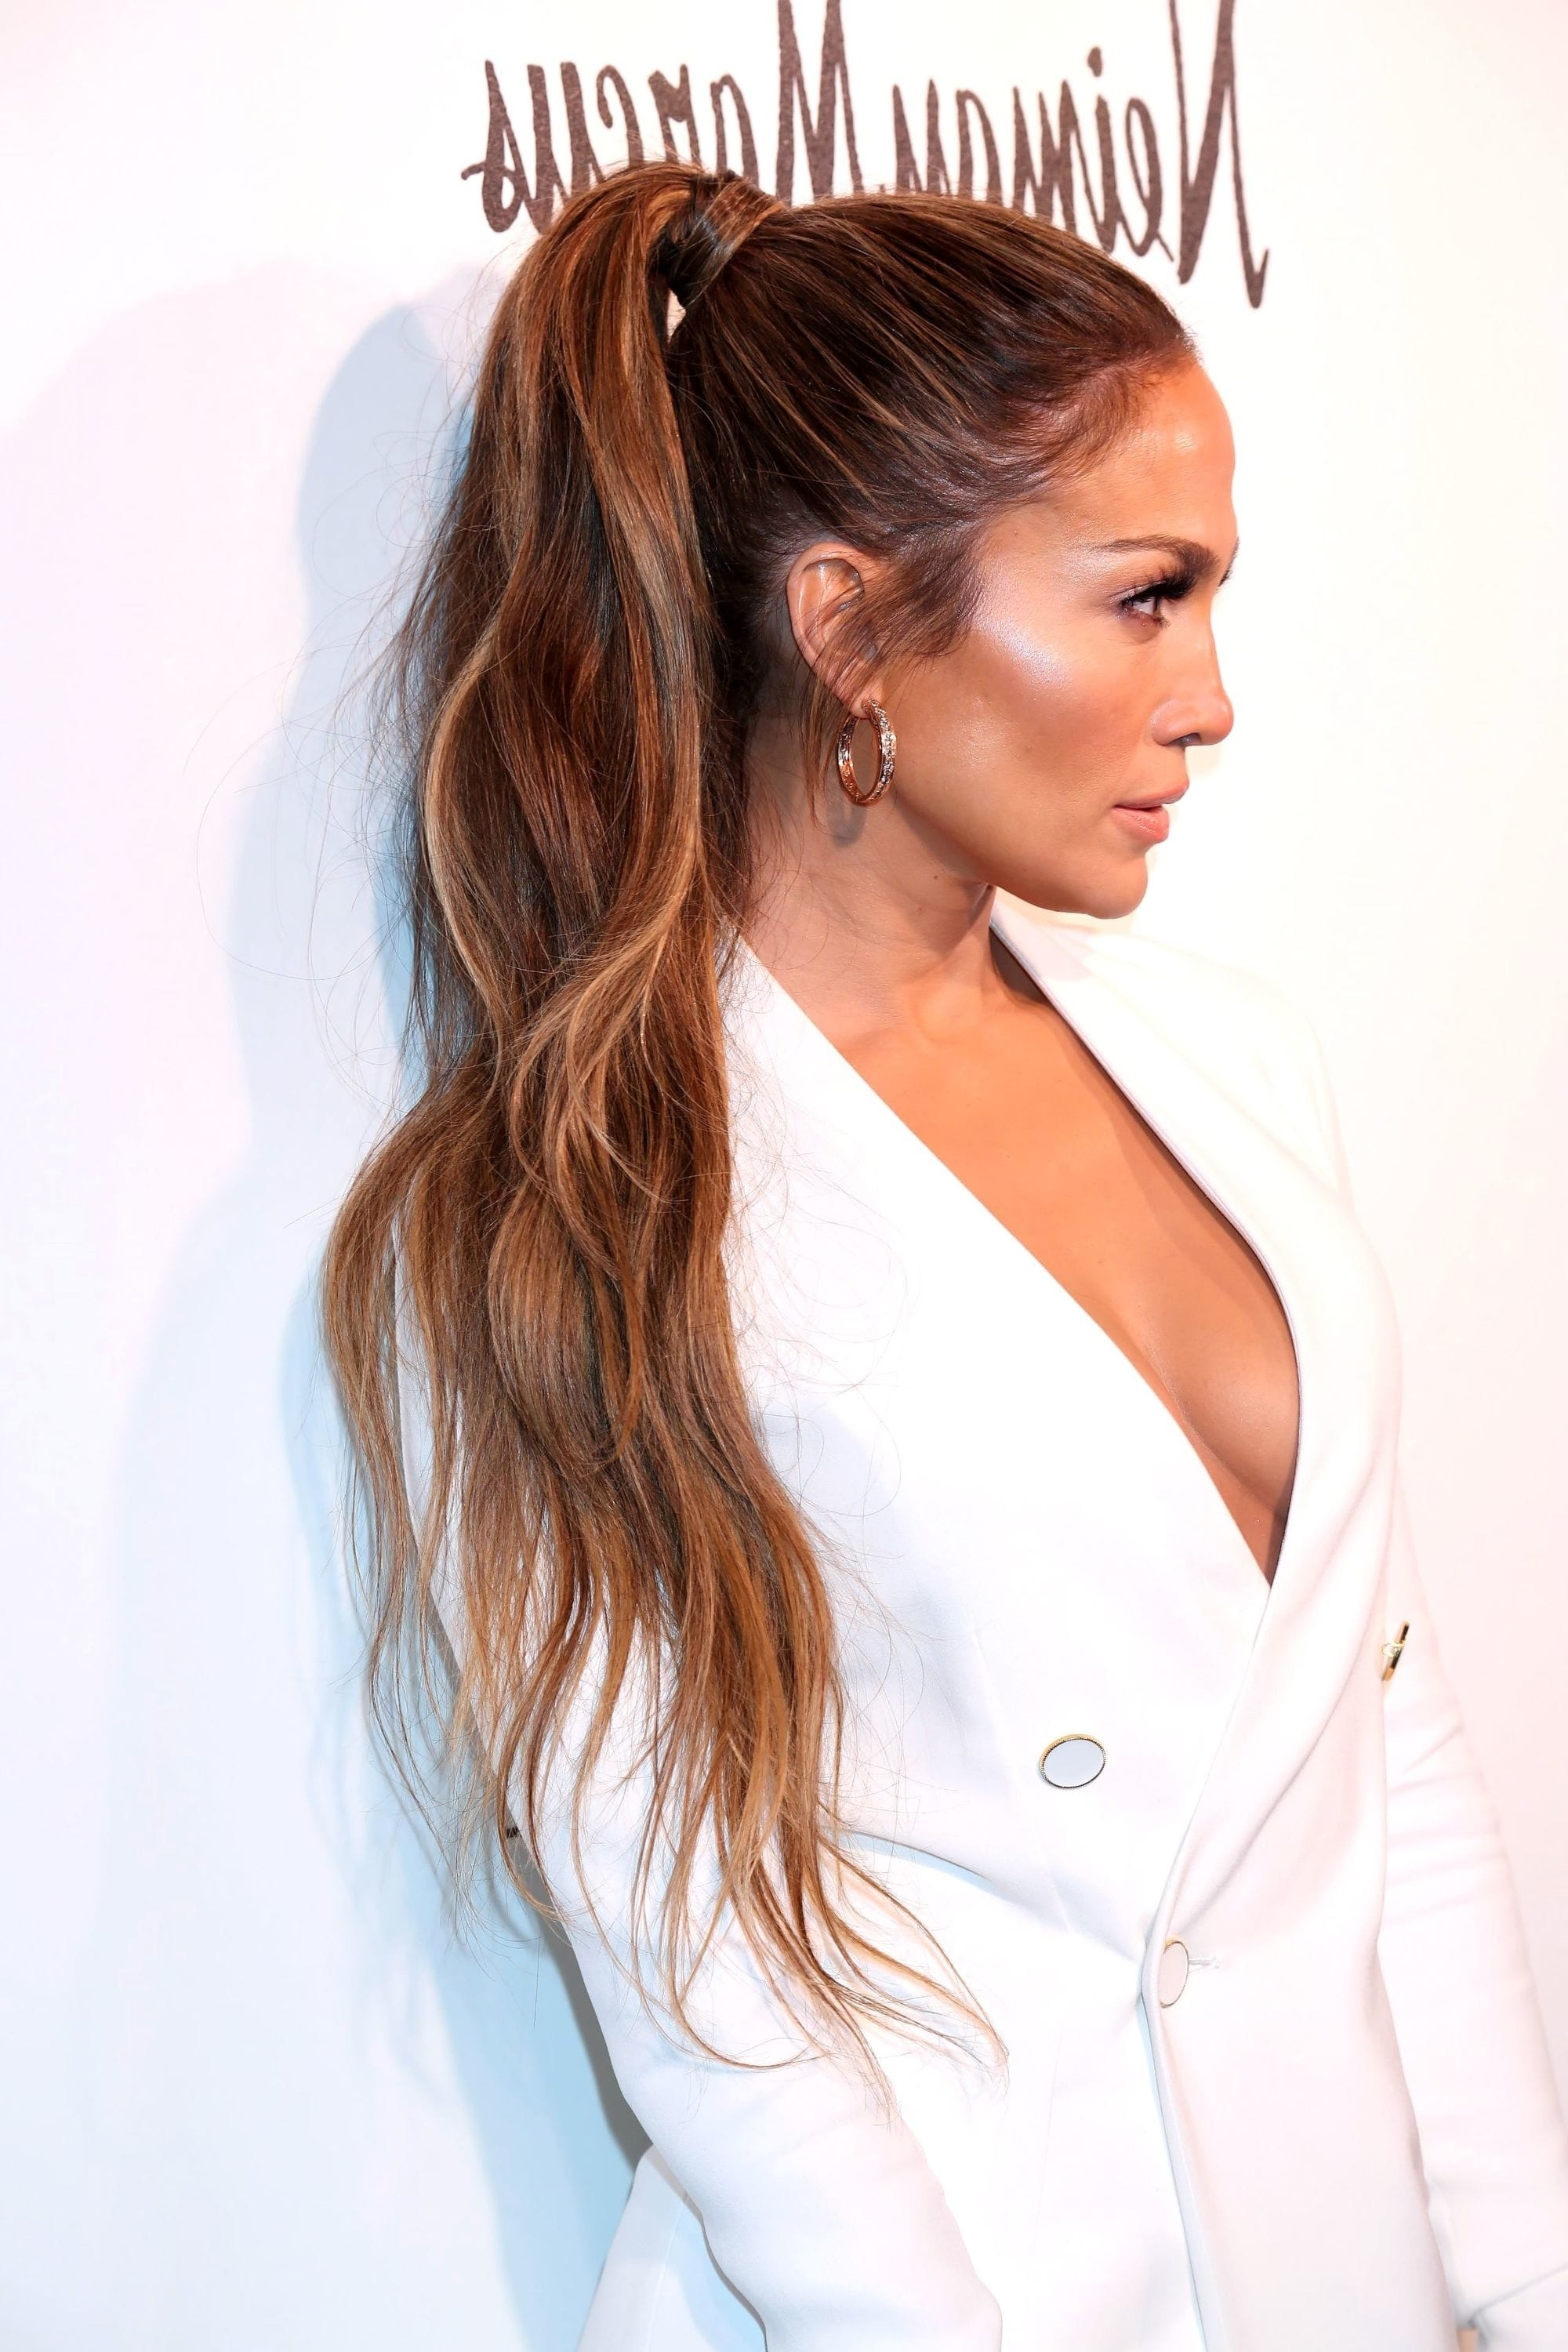 High Ponytail Hairstyles With Braid Easy High Ponytail Video With Well Known High Ponytail Hairstyles (View 2 of 20)